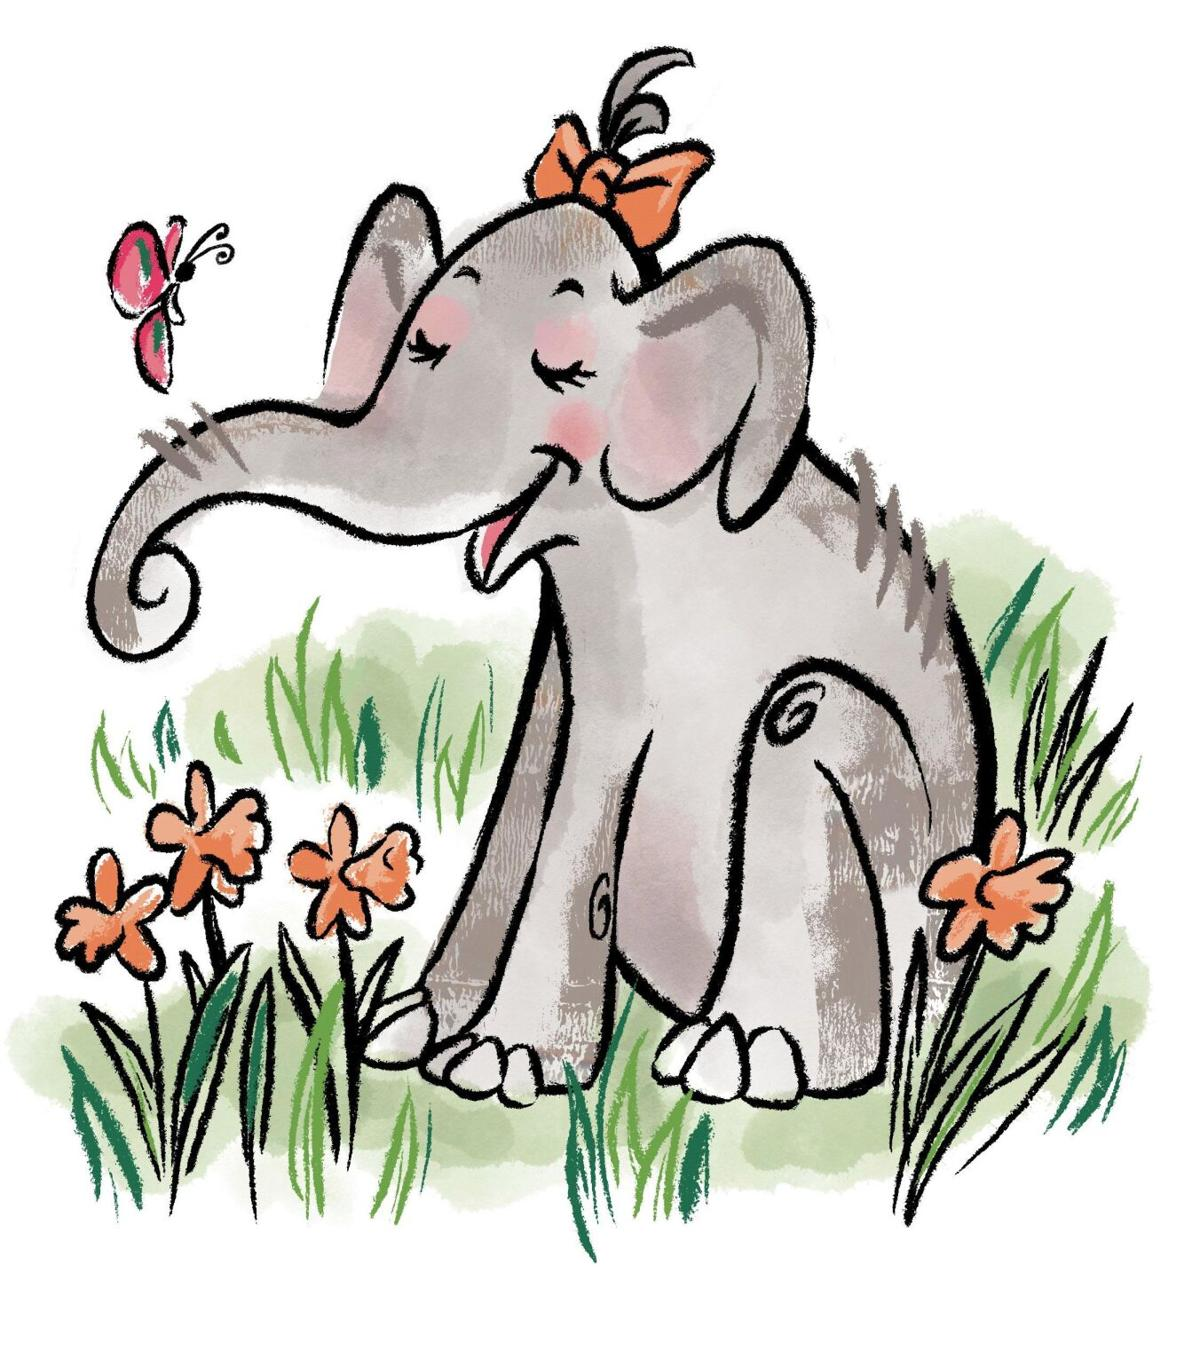 Cheery children's book about 'exceptional' elephant is fundraiser for shuttered Ivoryton Playhouse